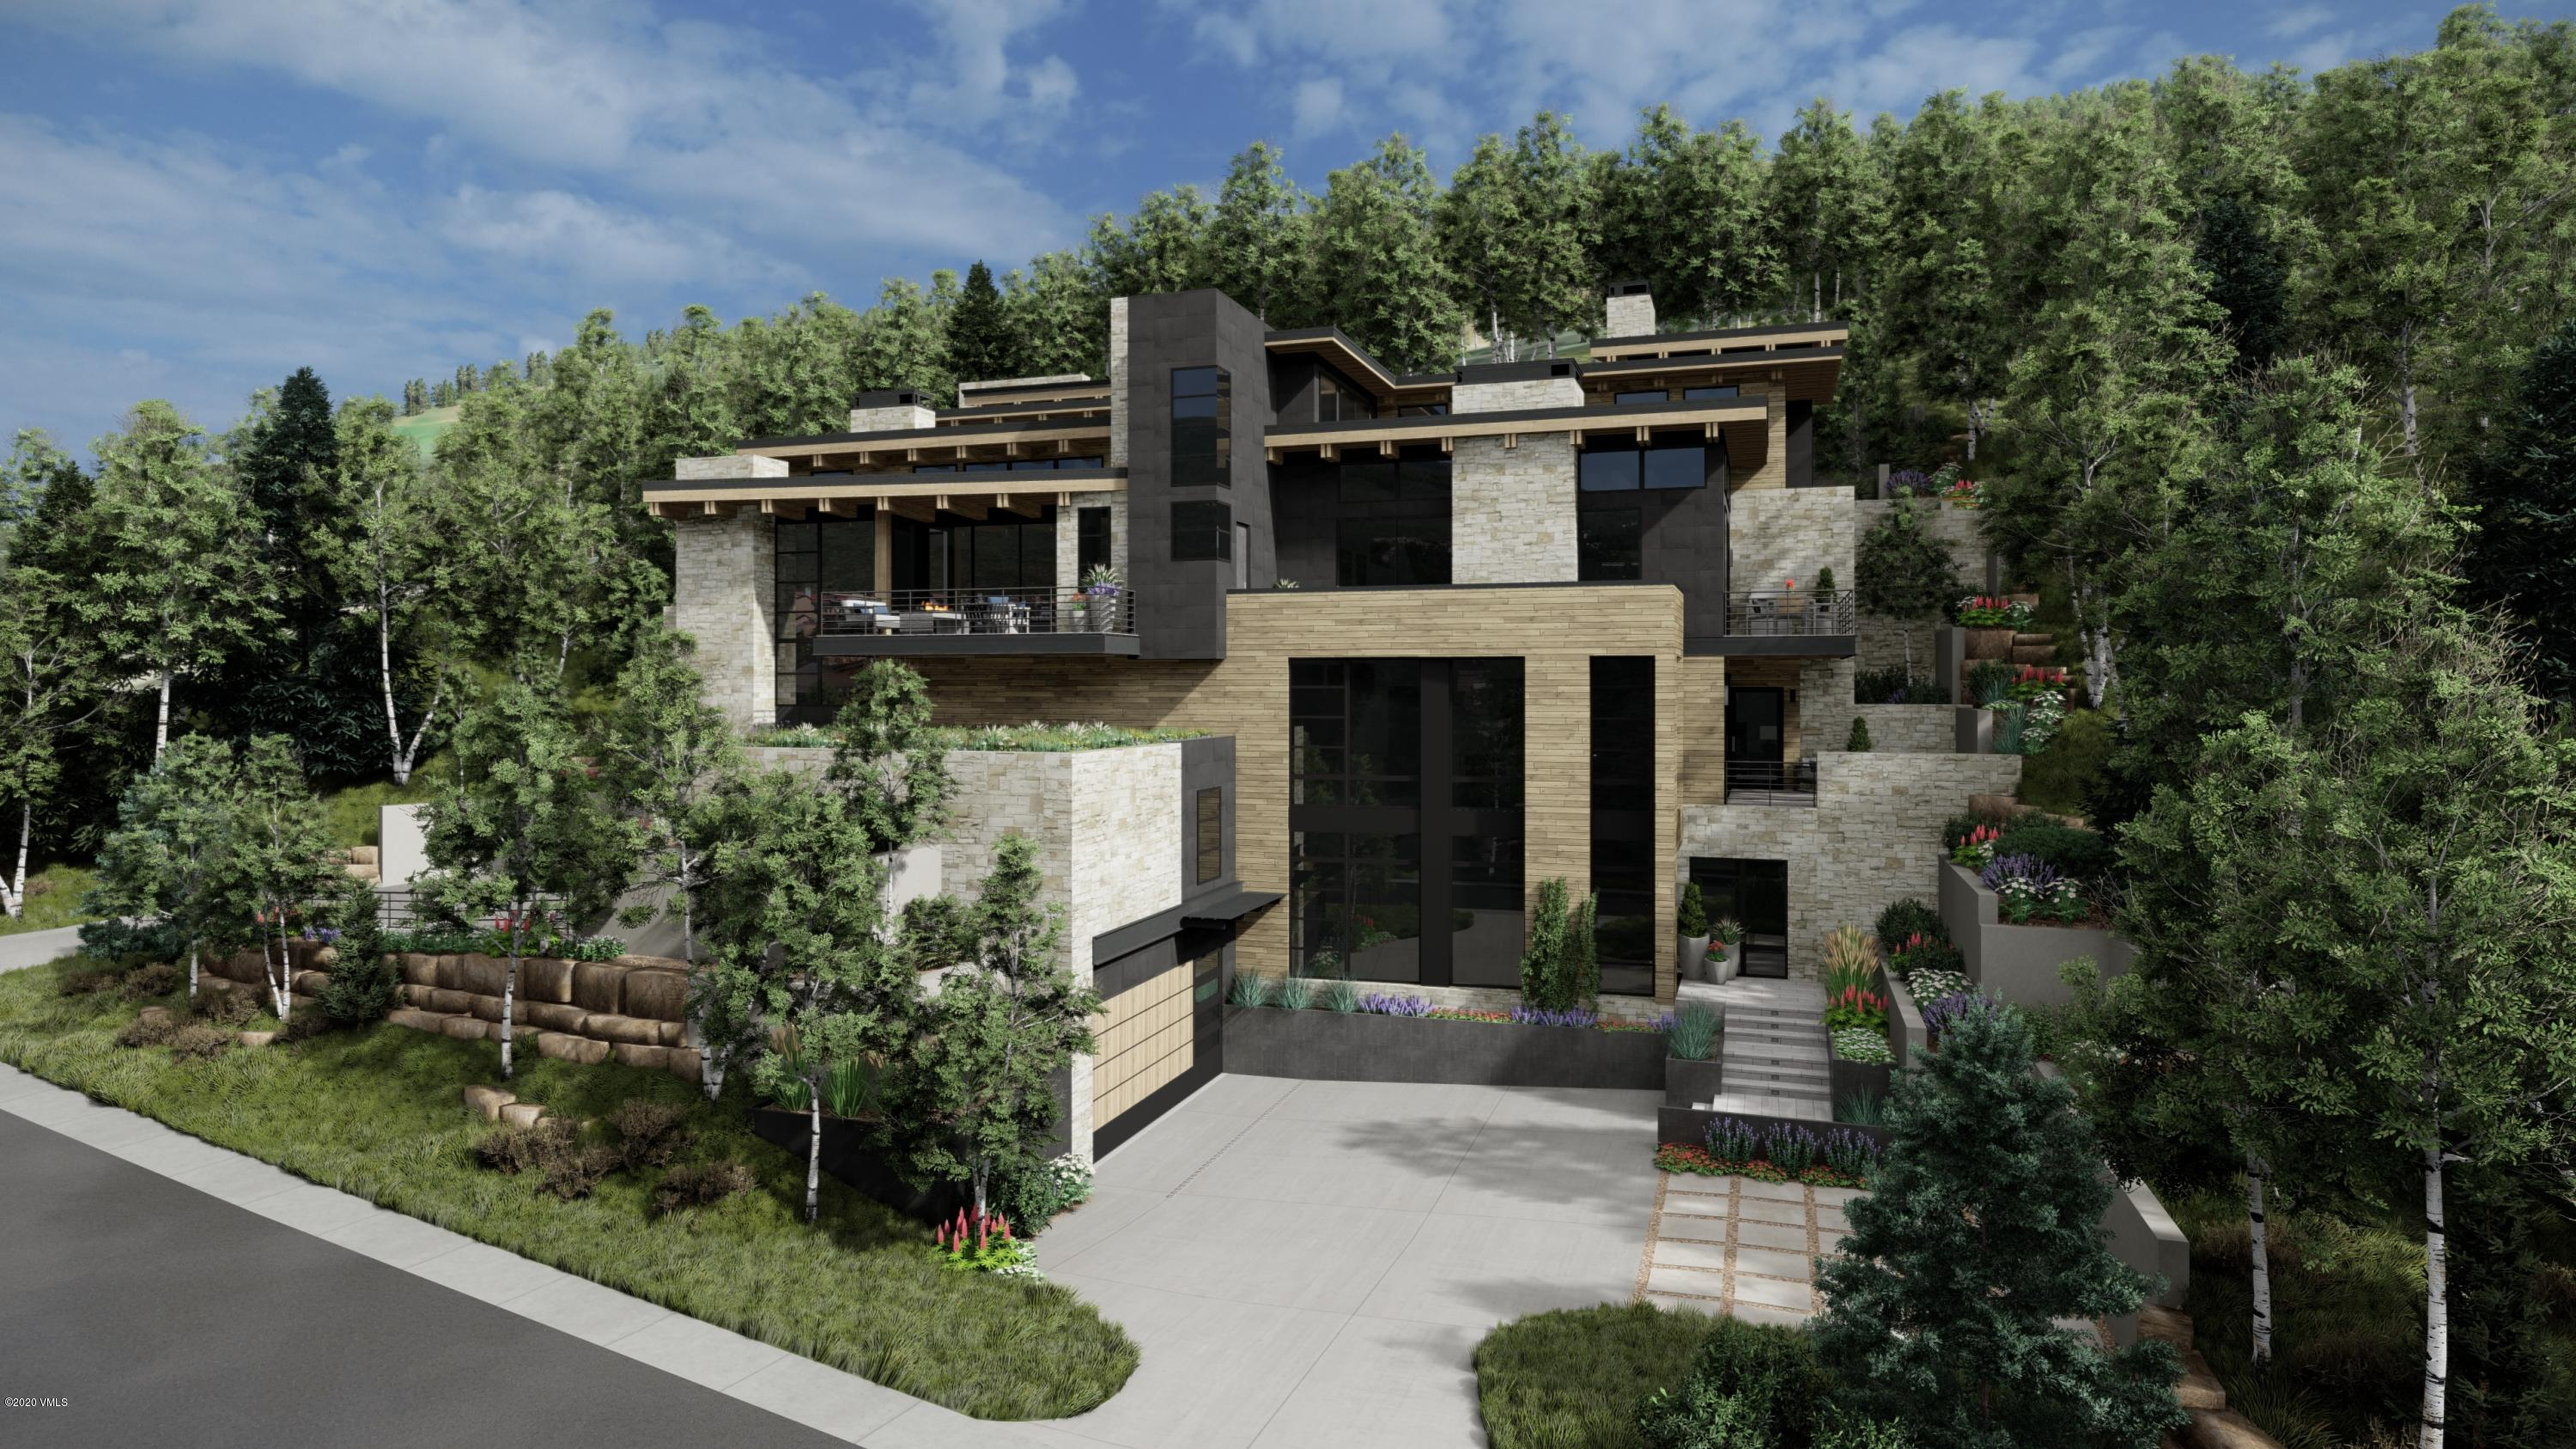 Rare opportunity to own a new construction, mountain contemporary home on the highly coveted Forest Road in Vail. Designed by Kyle Webb and built by Paragon Homes, Inc., this home offers unparalleled luxury, craftsmanship and sophistication. This modern mountain retreat features a warm aesthetic with elements of wood and stone used throughout and defined clean lines. Grand glass walls harness breathtaking views of the surrounding mountains, woodland and village of Lionshead. Located approximately 500 feet from the Born Free ski run, the location is prime especially for those that love tree skiing or for those who wish to briefly ski down to the  Lionshead Gondola which is only about 600 feet away. Encompassing 5,995 SF of living space, there are five bedrooms, six bathrooms and several outdoor patios.  With the driveway and all deck surfaces heated efficiently, all will enjoy the beauty of the outdoor dining area year-round. The refined kitchen with gorgeous Italian cabinetry and state of the art appliances open up to the living and dining areas. With elevated views, sun filled interiors, this open floorplan masterfully accommodates for entertaining and family fun. Offering four levels of luxurious living, every room is an experience in and of itself with spectacular attention to detail. The main-level master bedroom was designed to provide ultimate privacy, while still encapsulating the beauty of the outdoor landscape with its own spacious patio and surrounding aspen trees. After a day of skiing Vail's world-famous powder or hiking in the White River National Forest, drop off your gear in the mudroom outfitted with built-in ski racks, cabinets, boot dryers, and shelving before heading upstairs for endless respite options. Nestled mountainside, enjoy the mountain-chic architecture that is luxurious, yet inviting for your family and guests to enjoy. Estimated completion February 2022. Please visit mls-672.ForestRoadLuxury.com for complete details.